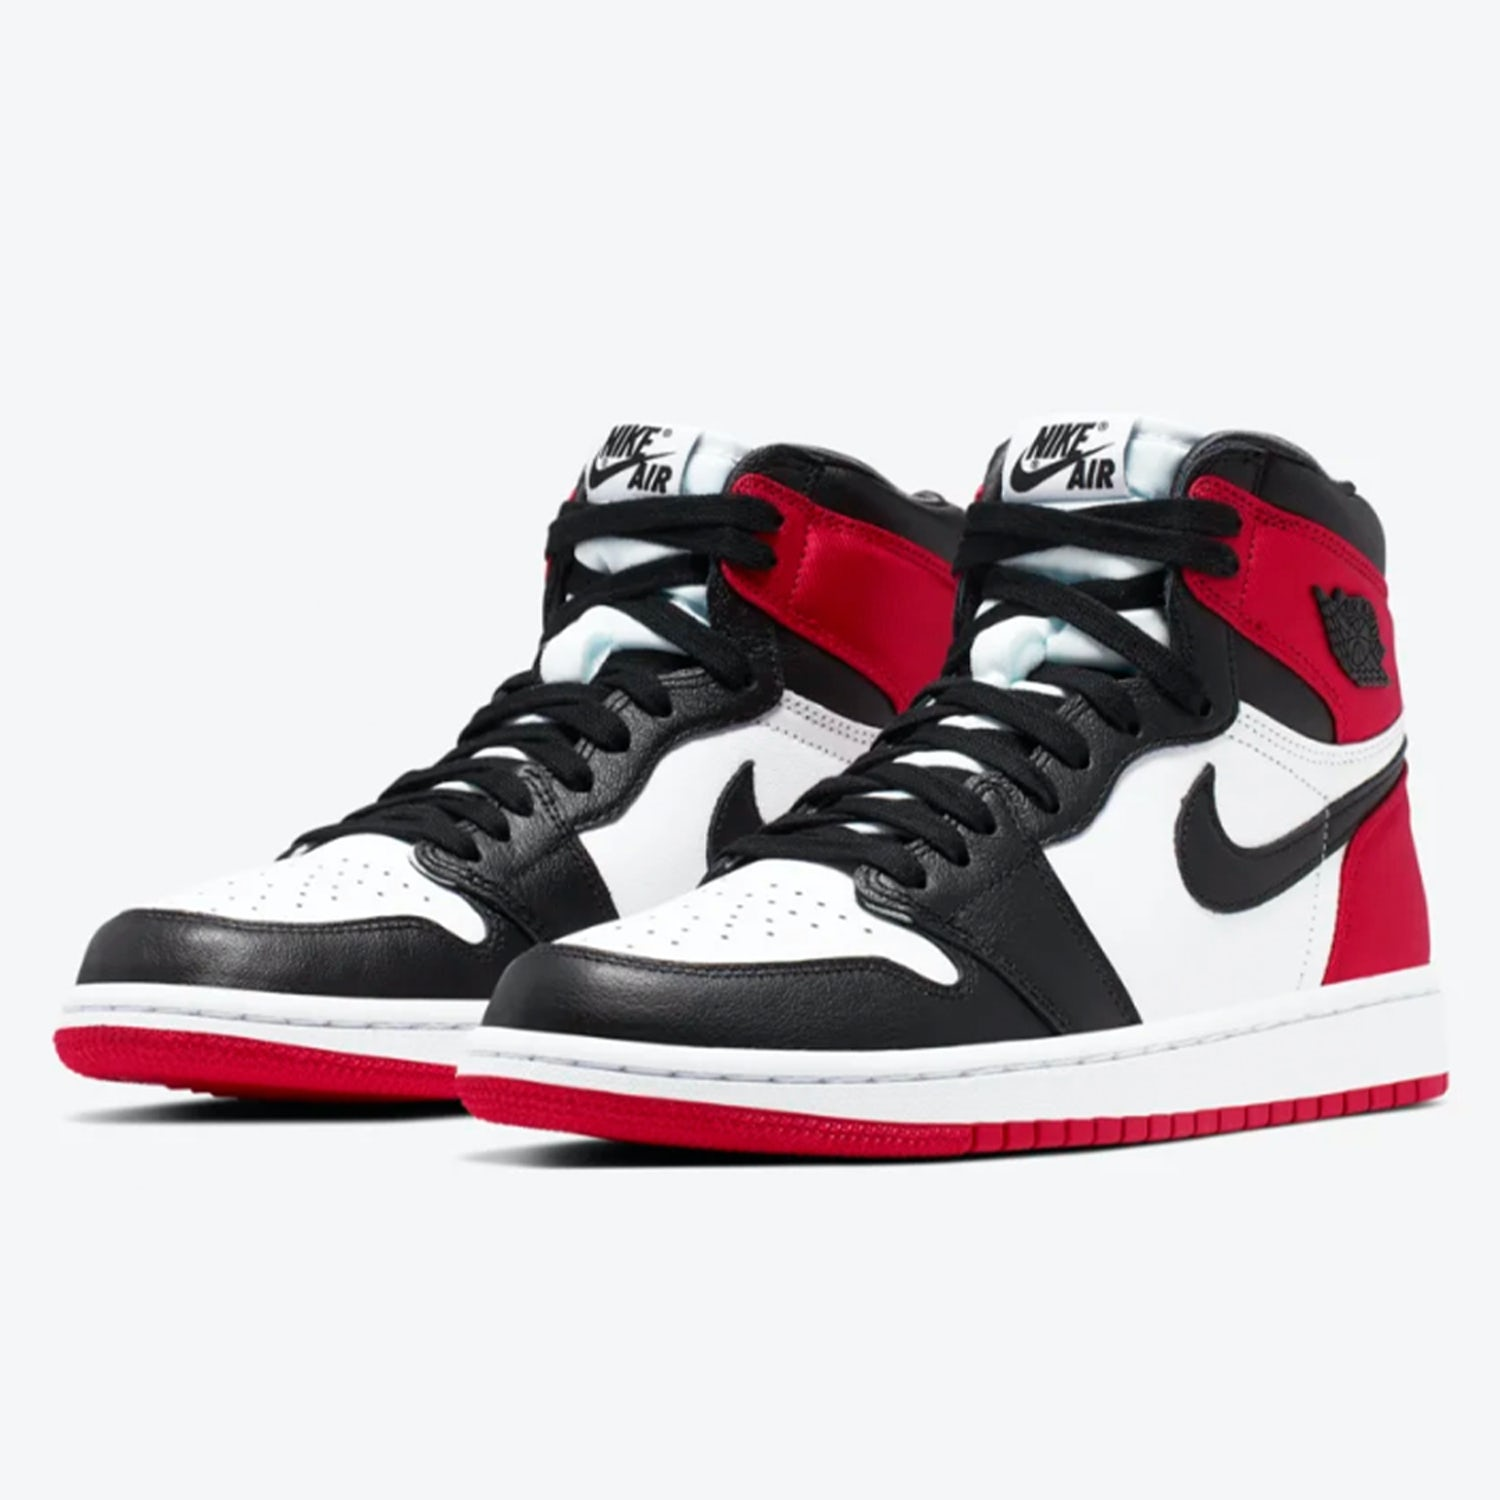 Air Jordan I Satin Black Toe 1